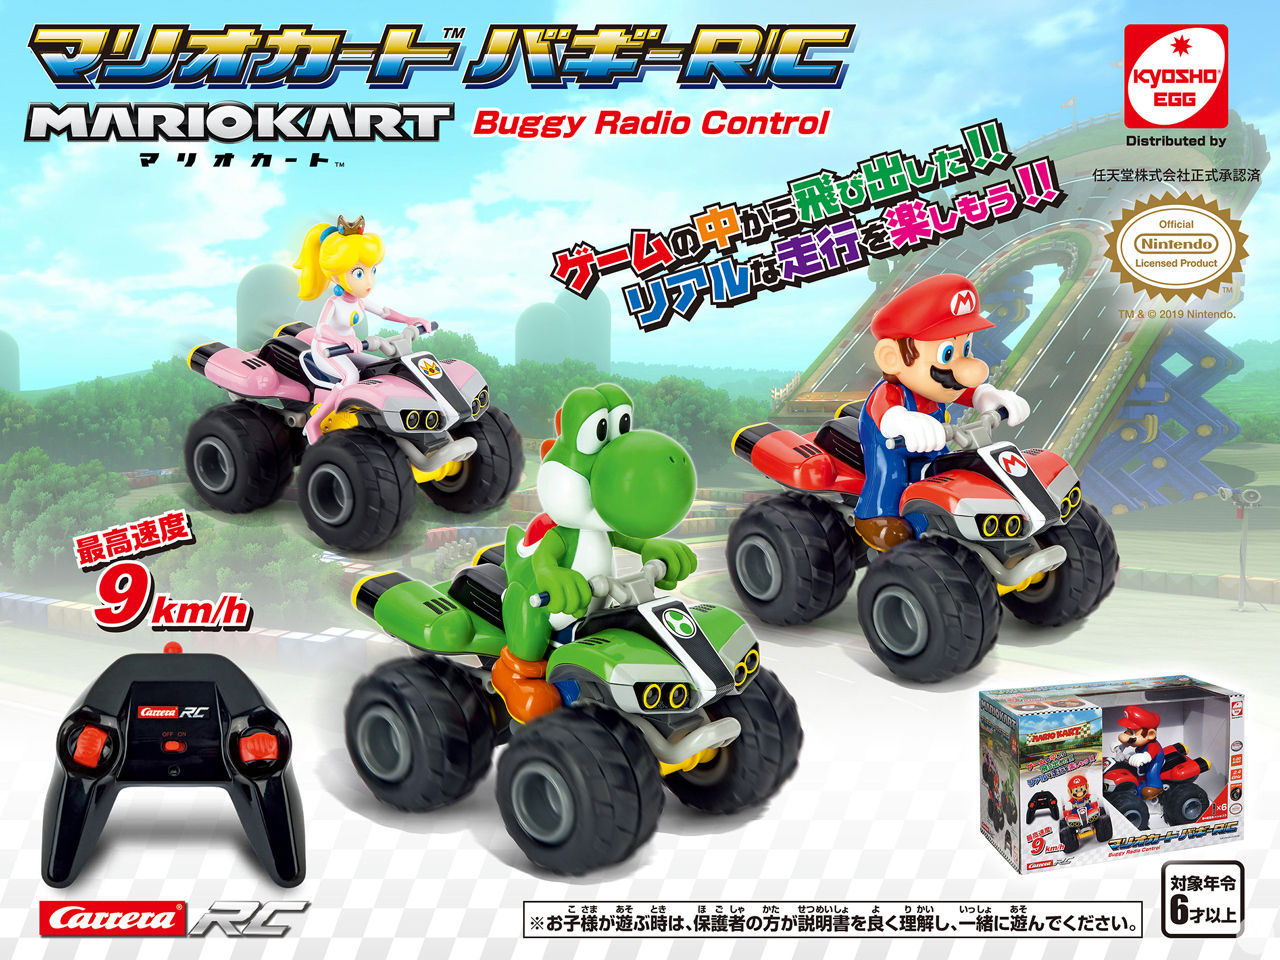 auto art has announced a range of toys-radio control Mario and friends